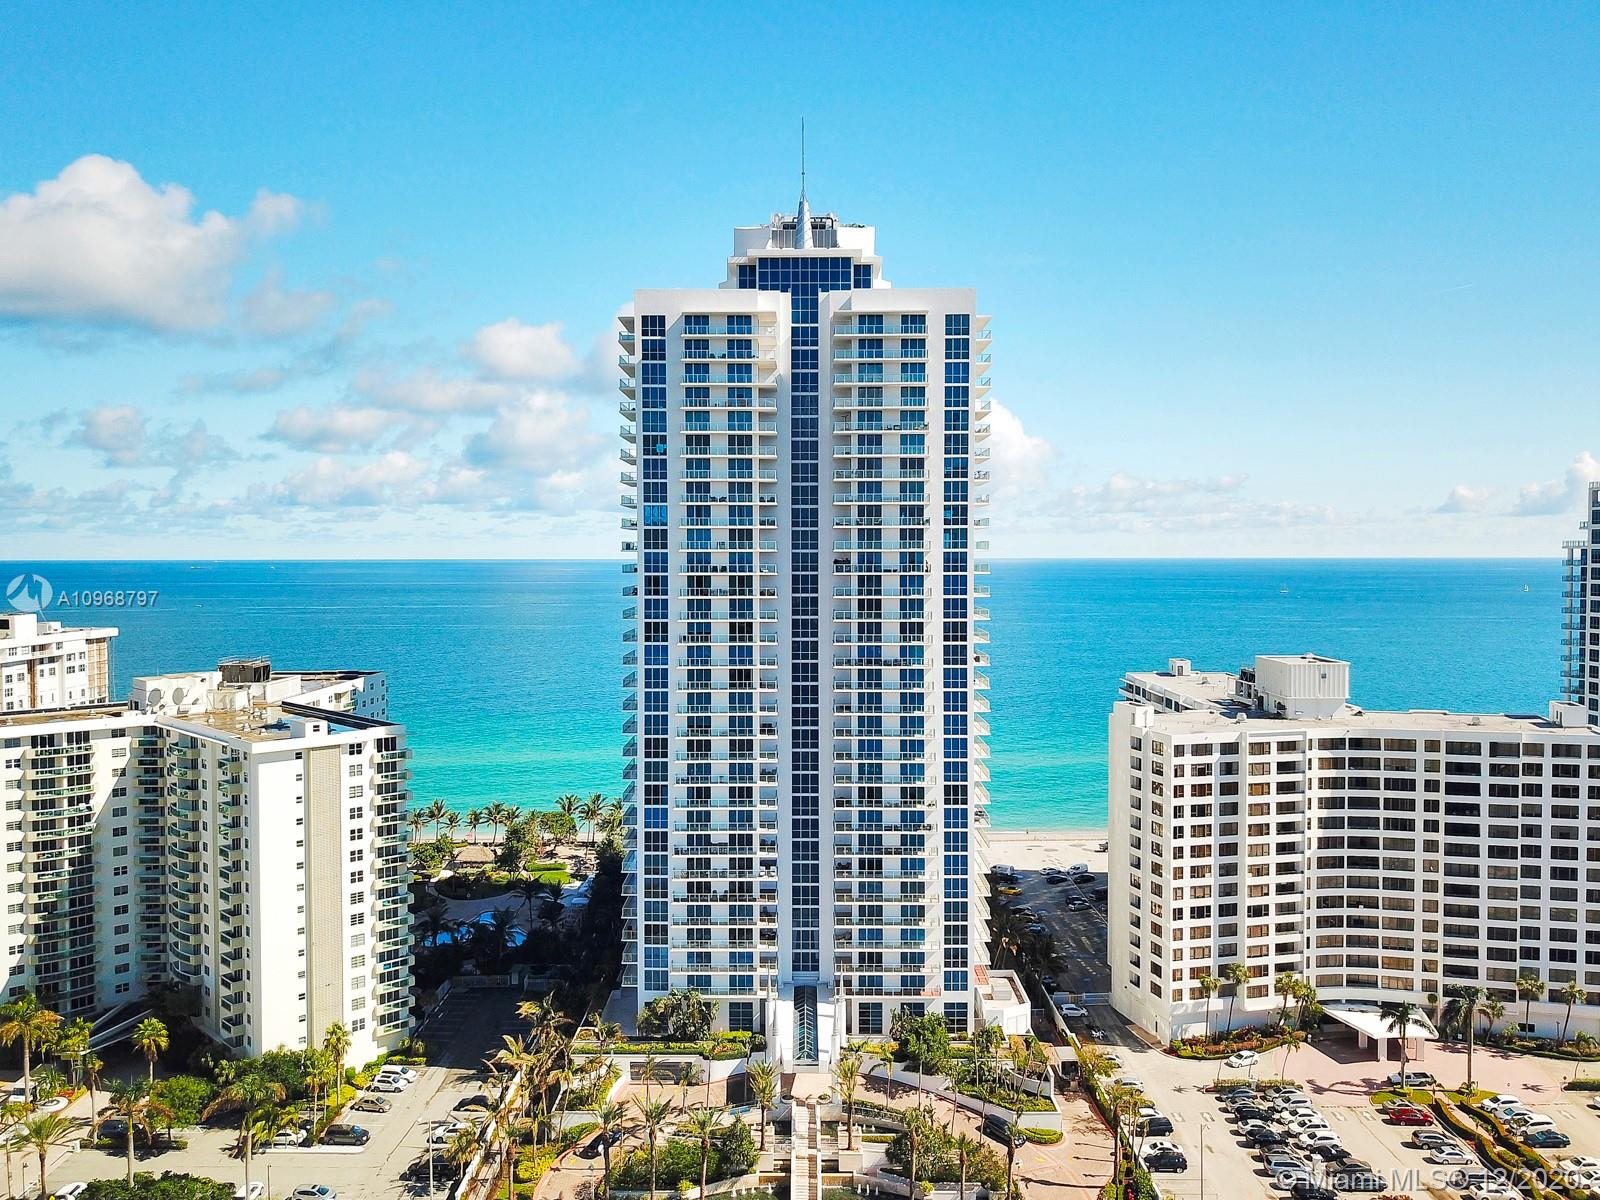 OUTSTANDING UNIT IN OCEAN PALMS. PRIVATE ELEVATORS TAKE YOU TO THE 26TH FLOOR WITH UNOBSTRUCTED VIEWS OF OCEAN, SKYLINE AND CITY.  MARBLE FLOORS THROUGHOUT, OPEN BAR,  LARGE KITCHEN WITH ISLAND, SUBZERO, THERMADOR AND MIELE APPLIANCES. UNIT HAS CUSTOM DAYORIS DOORS, ARMADA BUILT INS, NEW BLACKOUTS, AND A NEW GLASS SINGLE DOOR WAS JUST INSTALLED AT THE ENTRANCE. LAUNDRY ROOM. TWO AC UNITS. MANY UPGRADES THROUGHOUT. EACH OF THE THREE BEDROOMS HAVE IN SUITE BATHS. THREE BALCONIES. AMENITIES TO ENJOY: OUTDOOR BBQ AREA, POOL AND HOT TUB, TENNIS COURT, BASKETBALL, BILLIARDS ROOM, MEDIA ROOM, CLUBROOM, BUSINESS CENTER, TWO STORIES FITNESS CENTER. POOL AND BEACH SERVICE. MANAGEMENT OFFICE, SECURITY, DOORMAN, VALET. CLOSE TO FORT LAUDERDALE AIRPORT, AVENTURA MALL, RESTAURANTS AND SHOPPING PLAZAS.